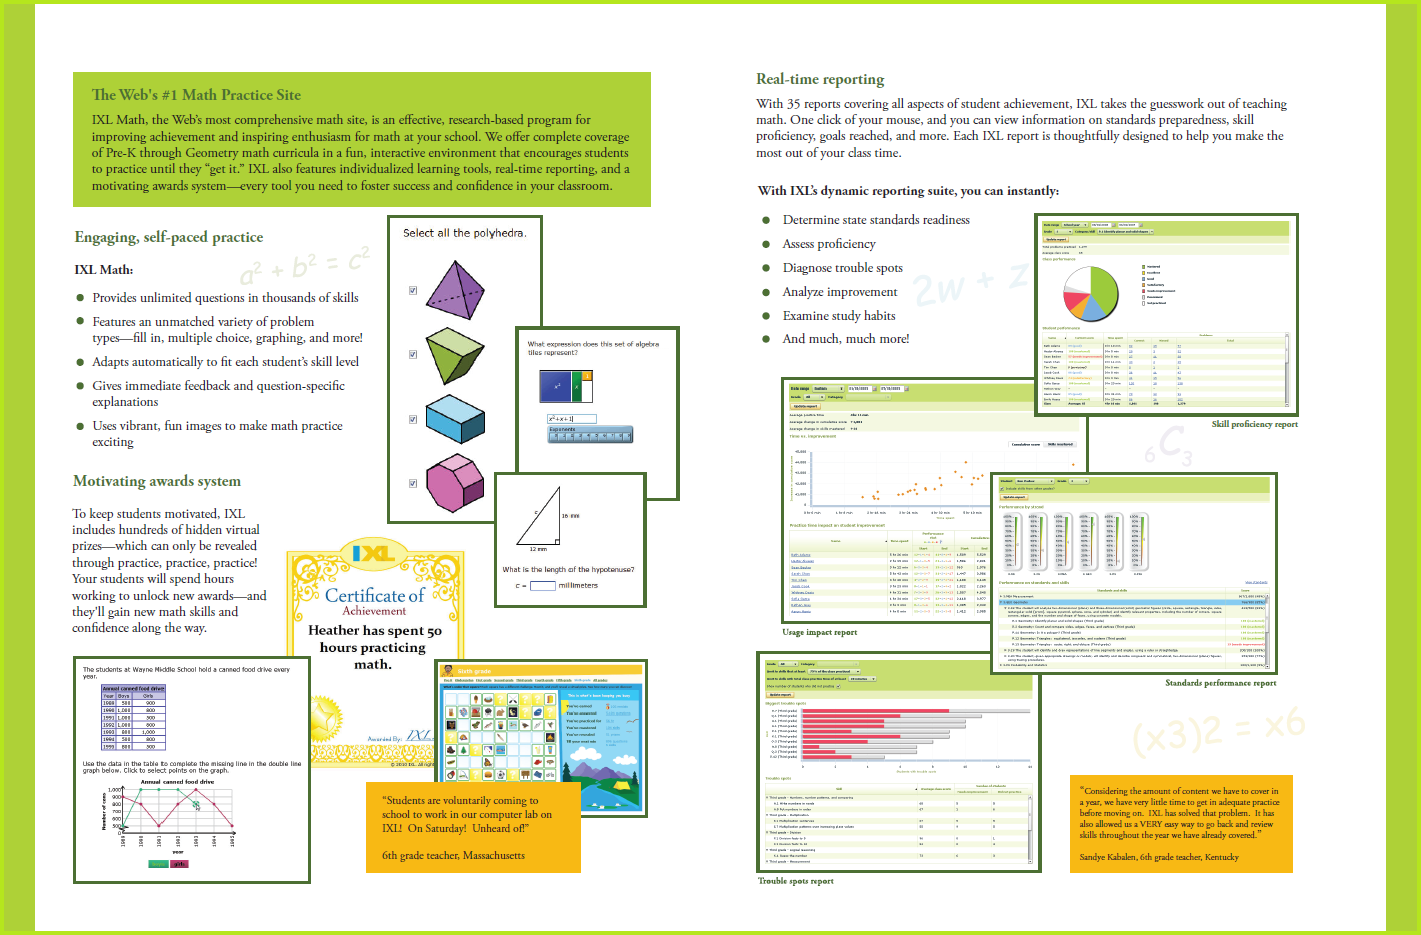 IXL Insights – Request a Brochure